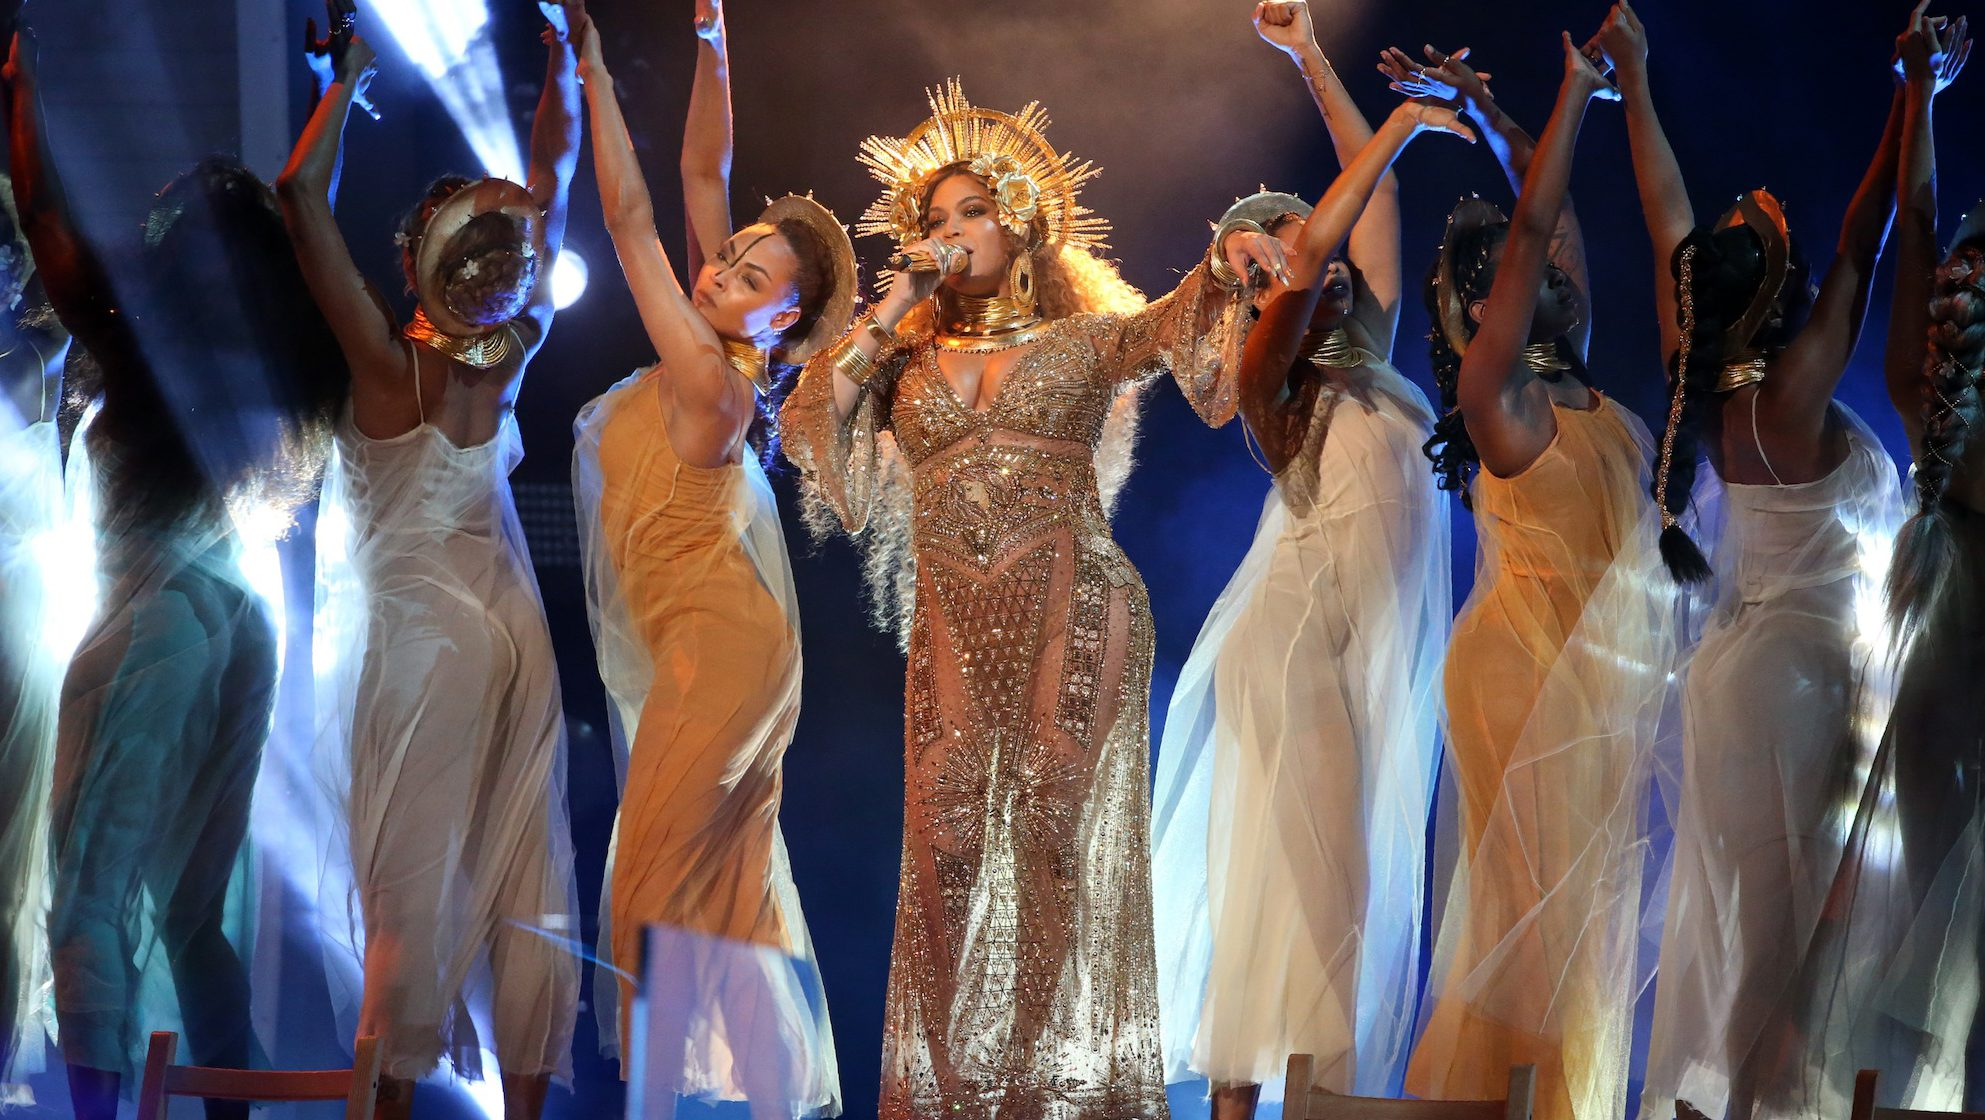 At the Grammys, Beyonce paid an epic tribute to Afro-diaspora